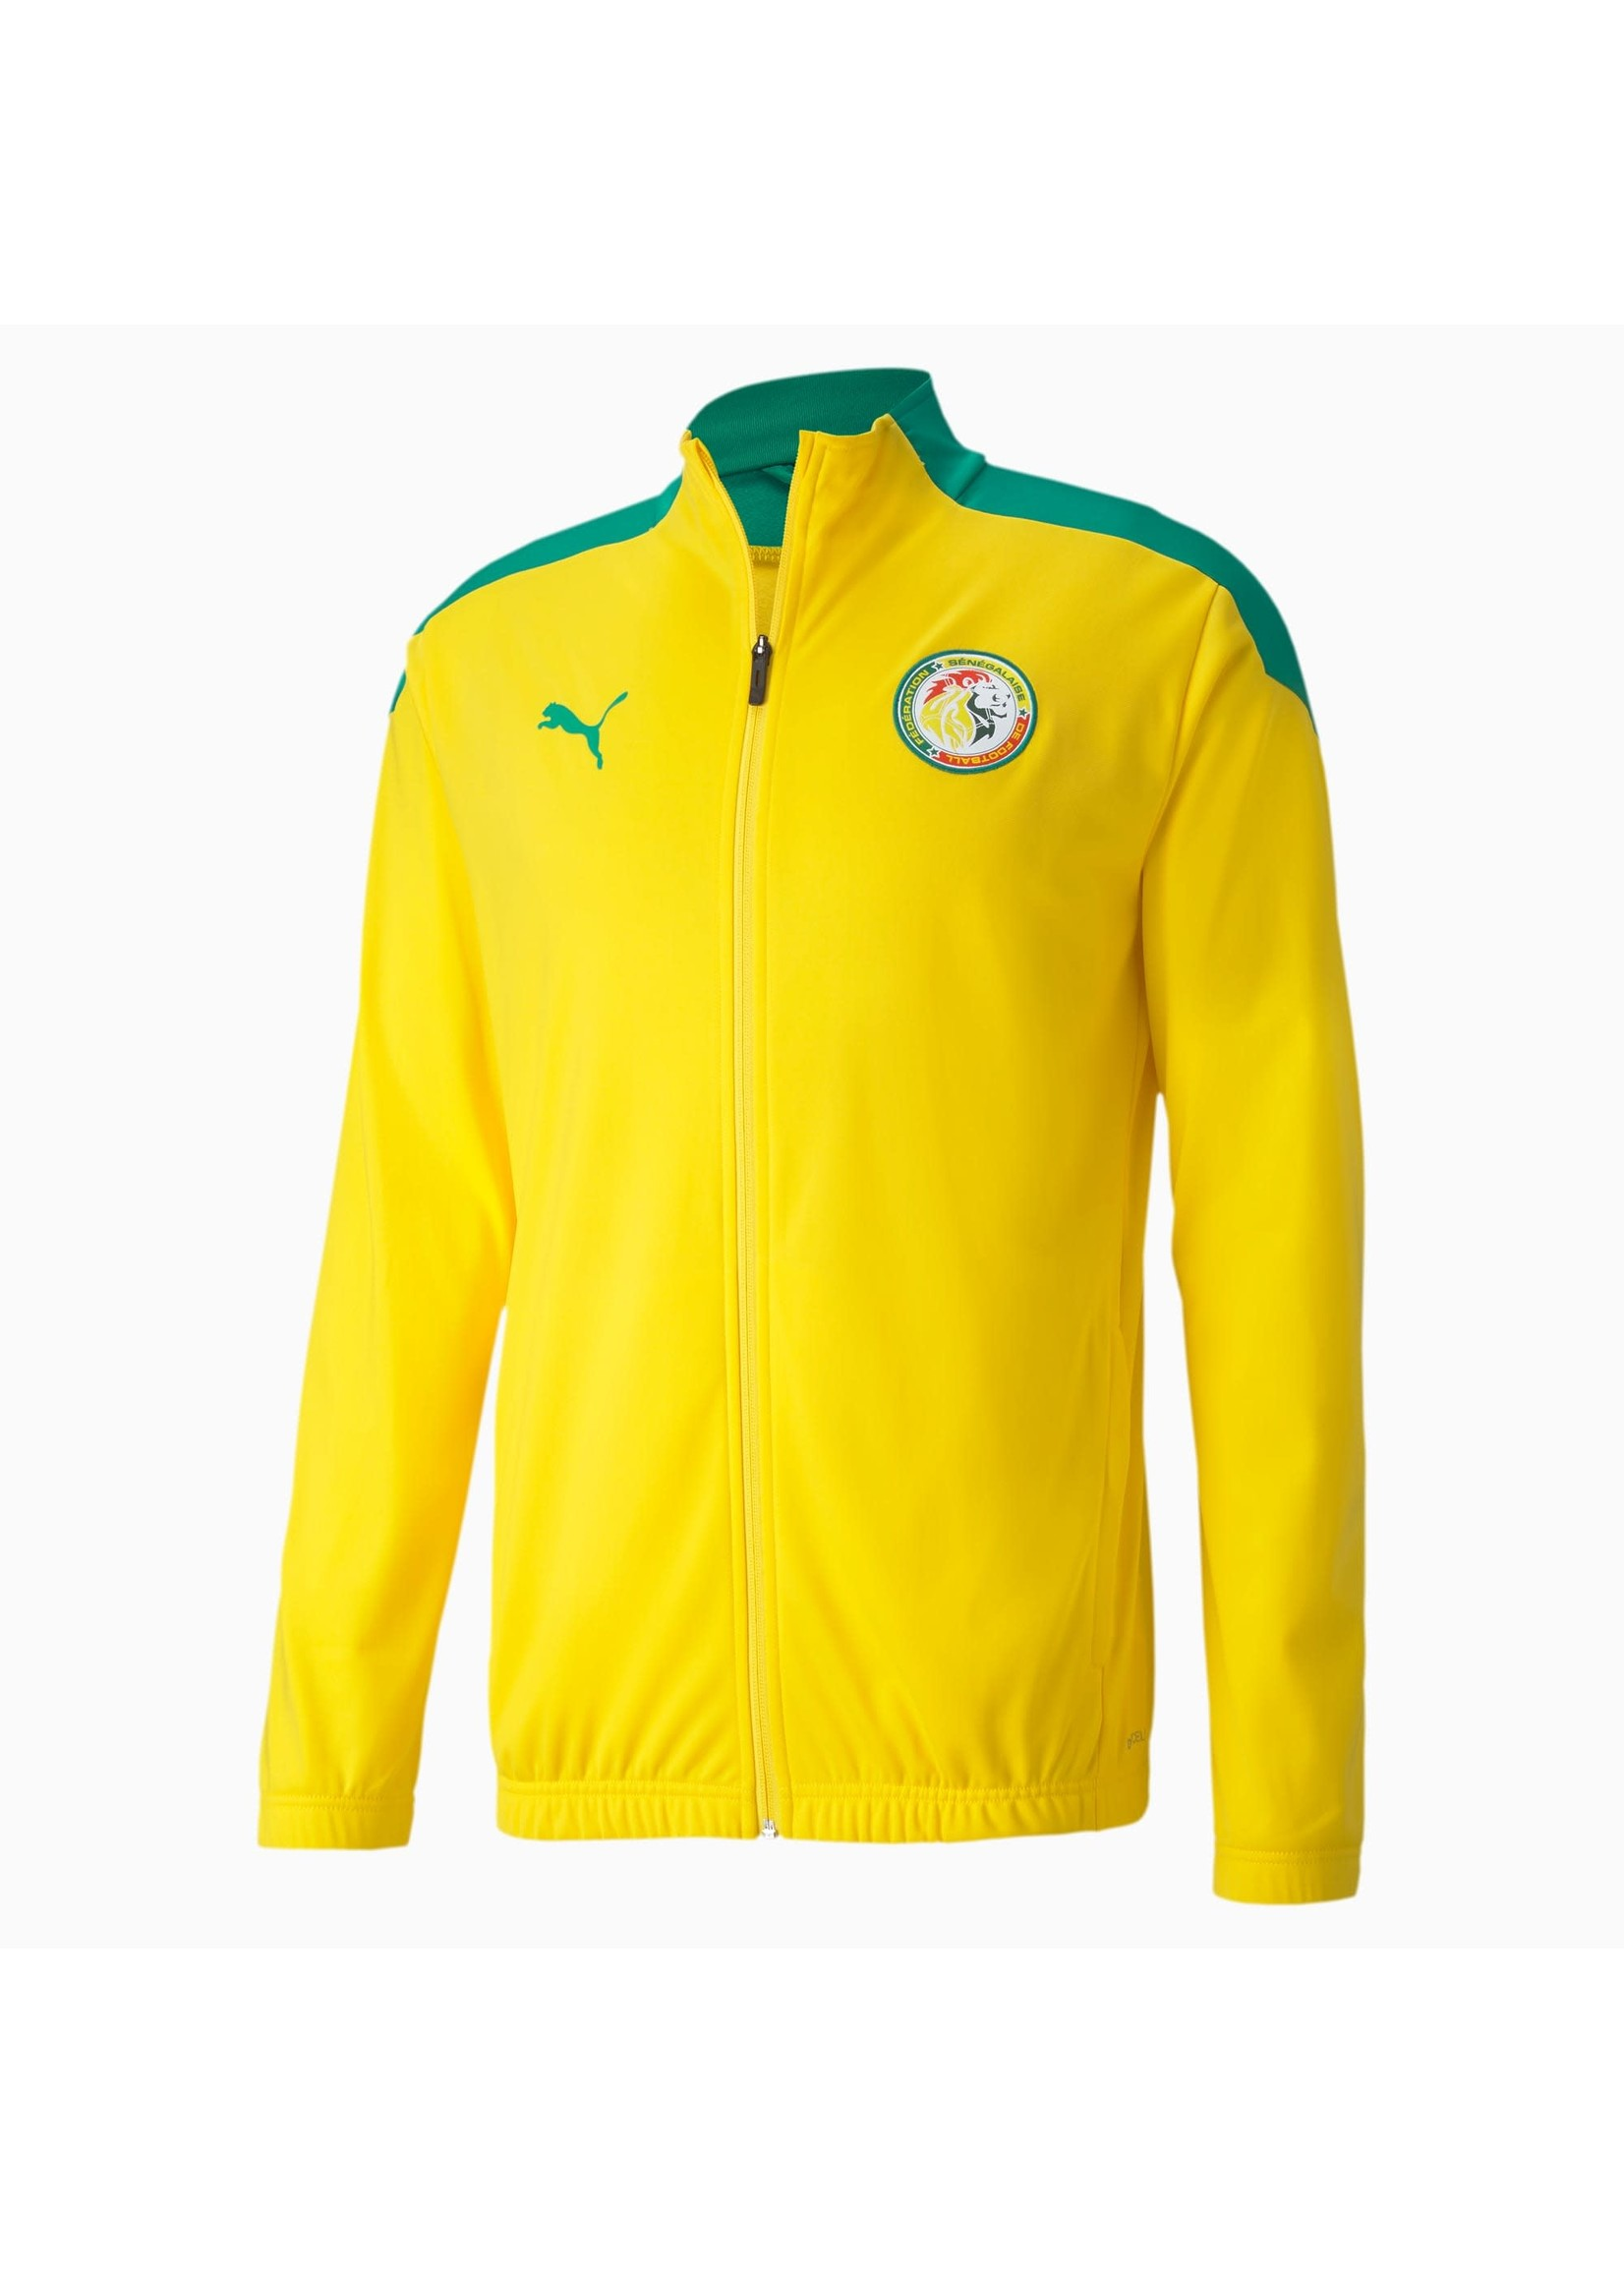 Puma Senegal Track Jacket - Full Zip - 757658 04